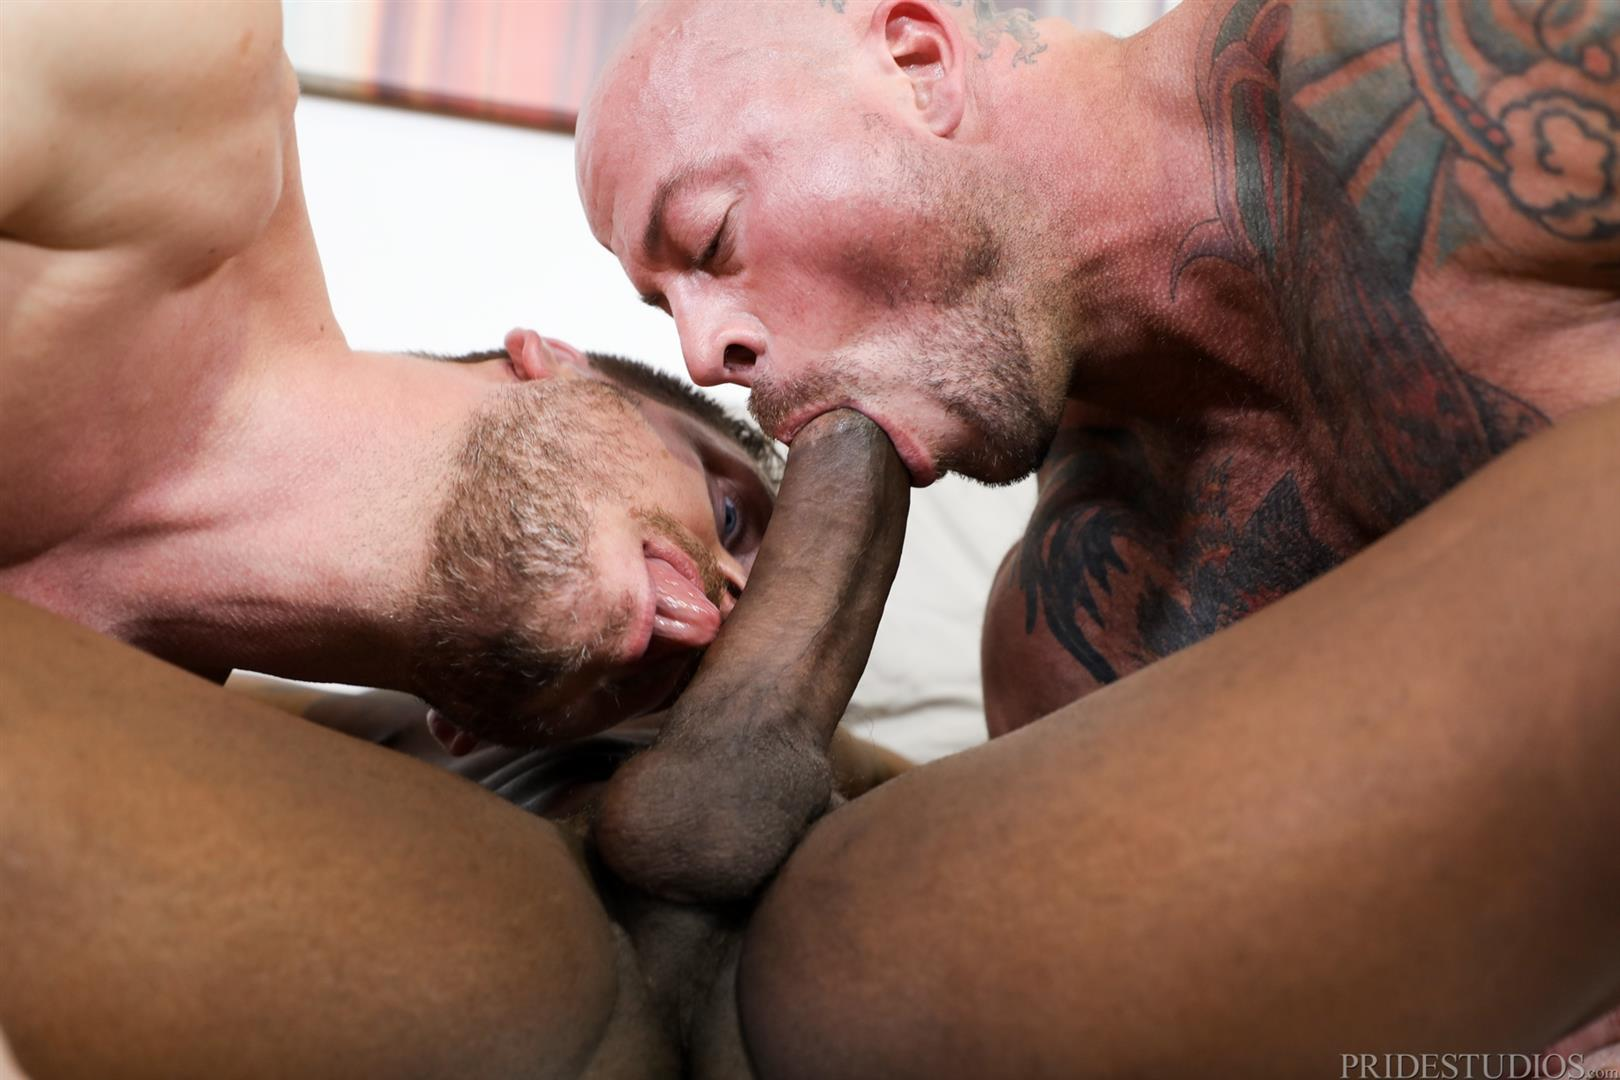 Extra-Big-Dicks-Sean-Duran-and-Hans-Berlin-and-Pheonix-Fellington-Interracial-Bareback-04 Muscle Daddies Sean Duran and Hans Berlin Share Pheonix Fellington's Big Black Cock